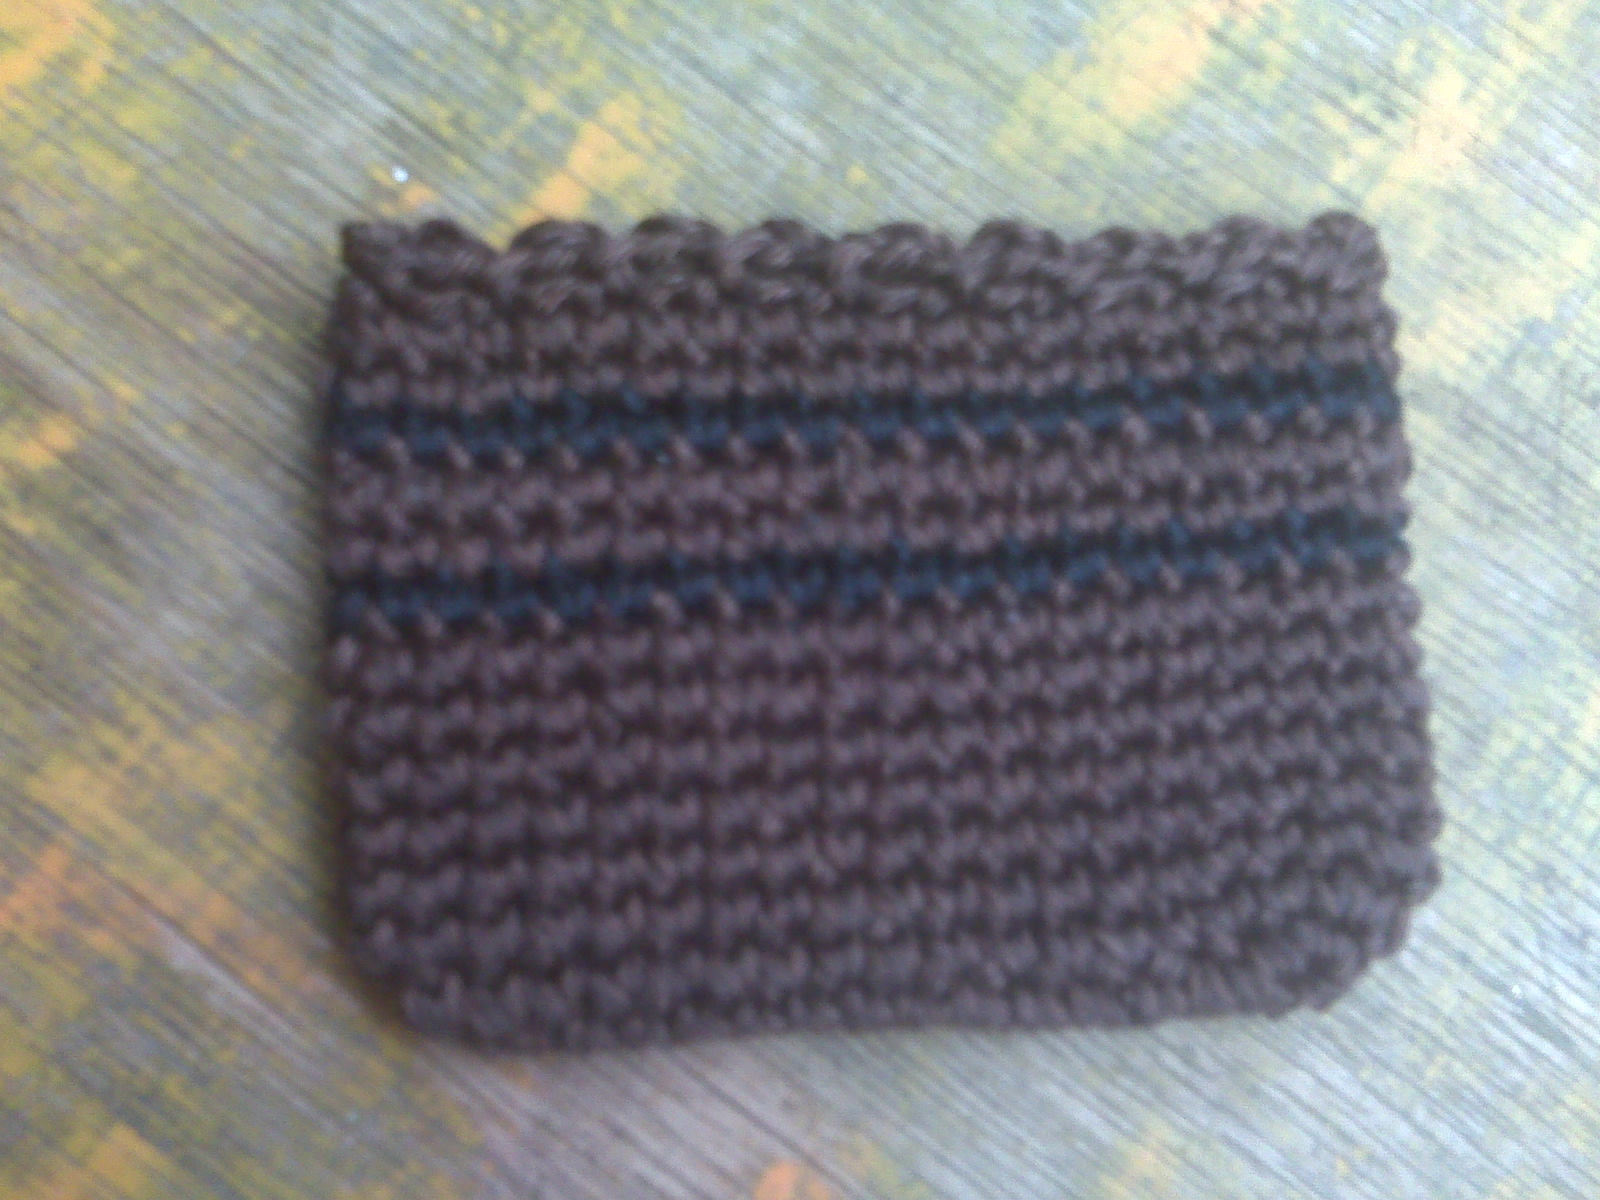 Crochet Coin Purse Pattern : Girlies Crochet: Crochet Coin Purse